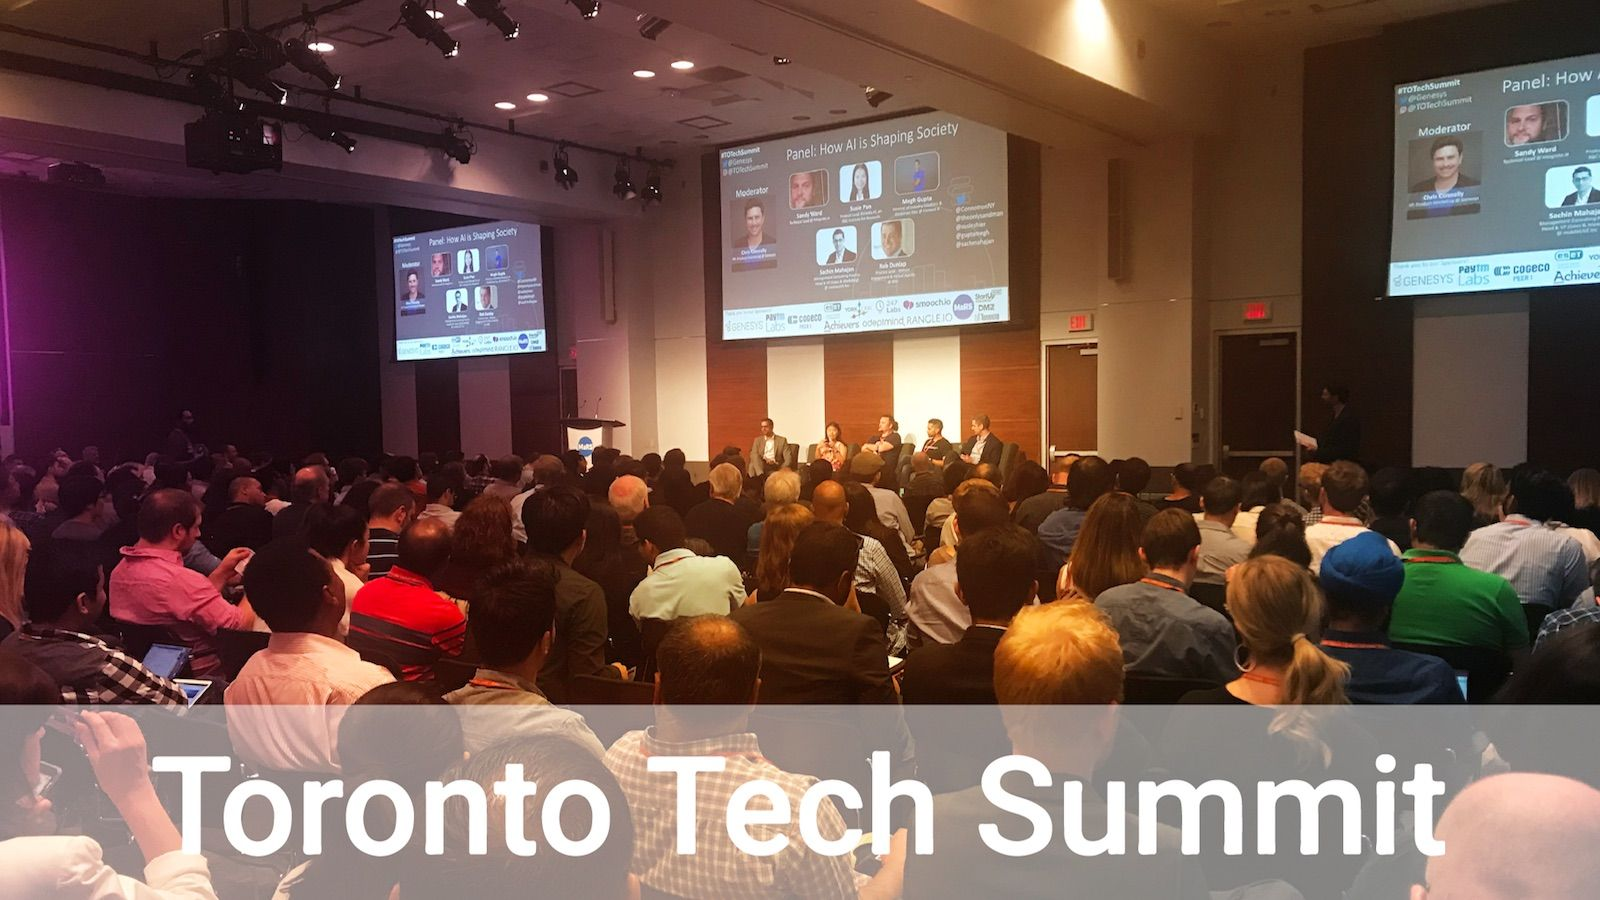 tech summit attended by many people